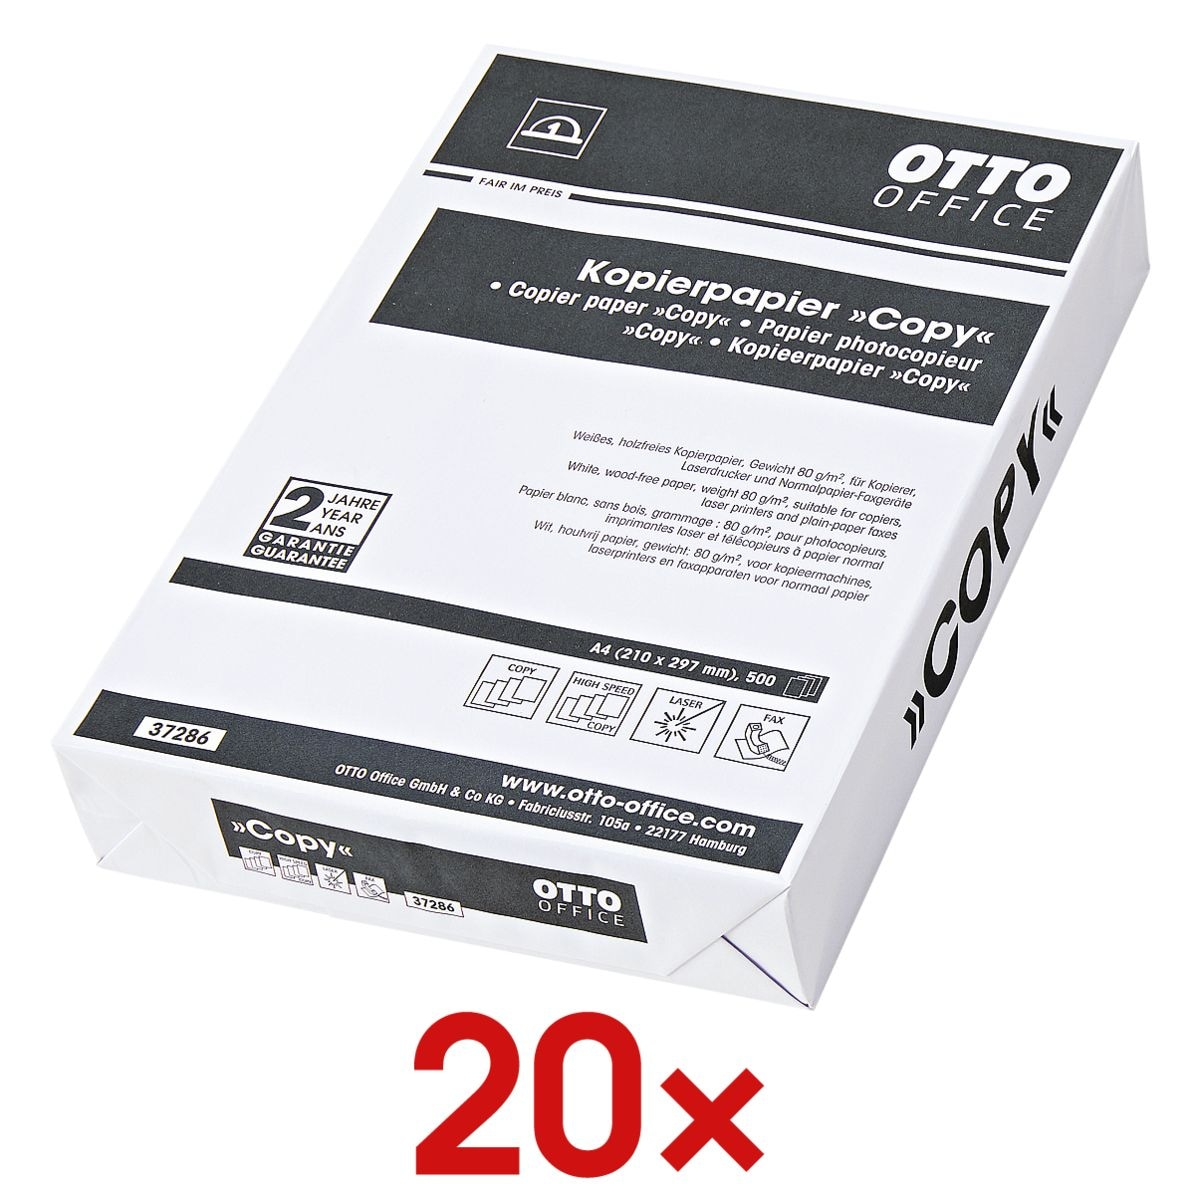 20x Papier photocopieur A4 OTTO Office Budget COPY - 10000 feuilles au total, 80 g/m²